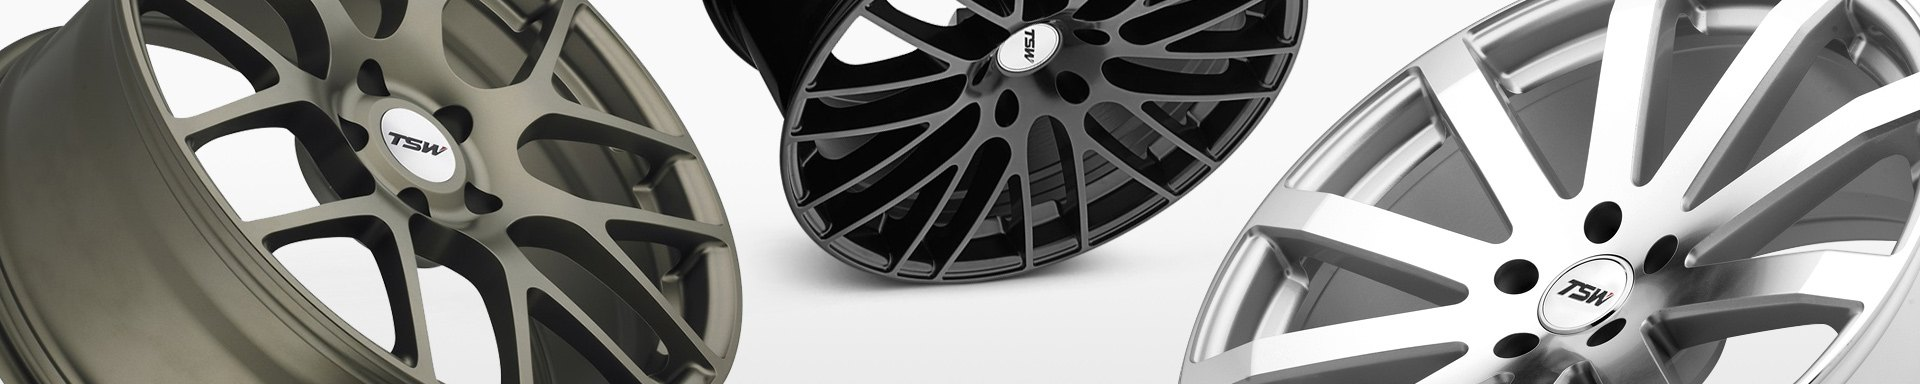 Universal TSW WHEELS & RIMS